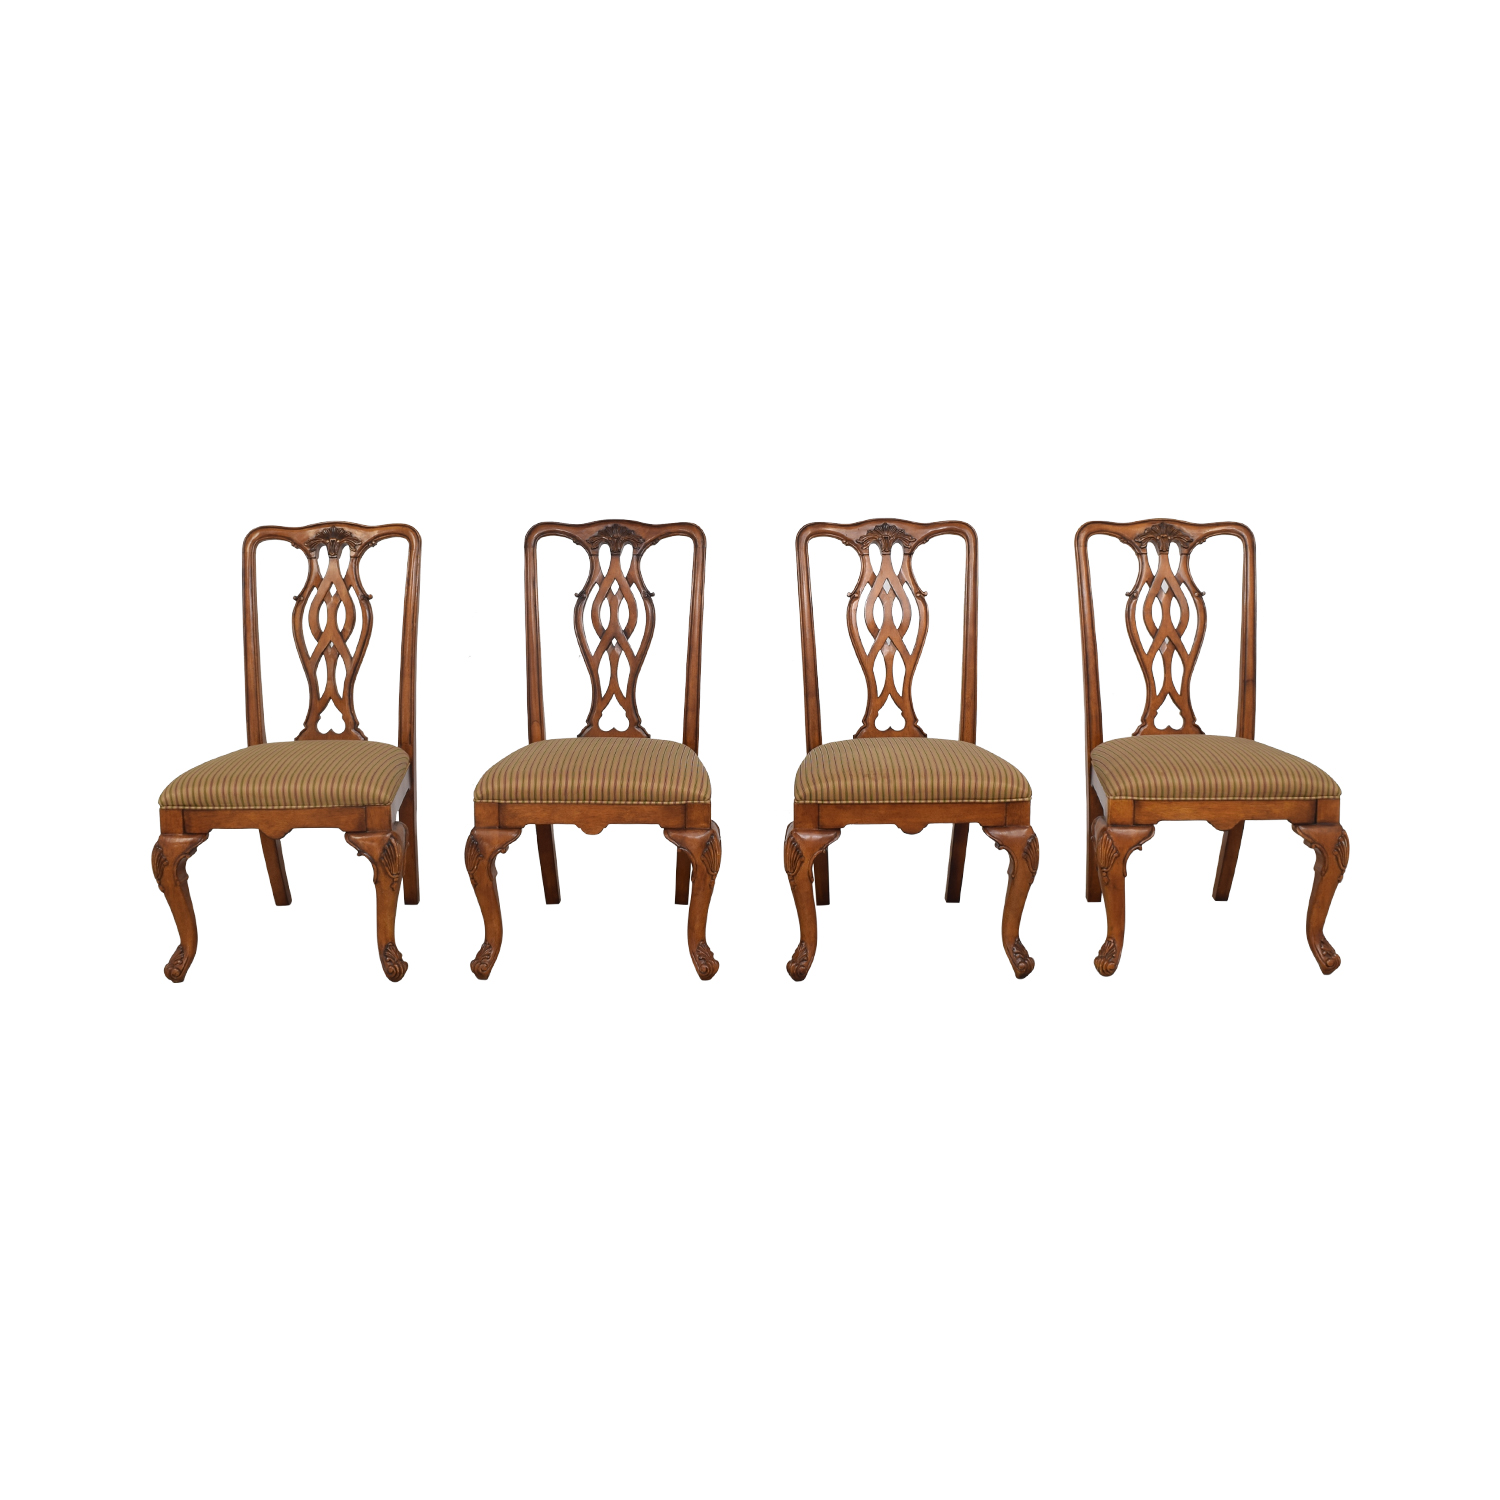 Drexel Heritage Dining Chairs / Dining Chairs